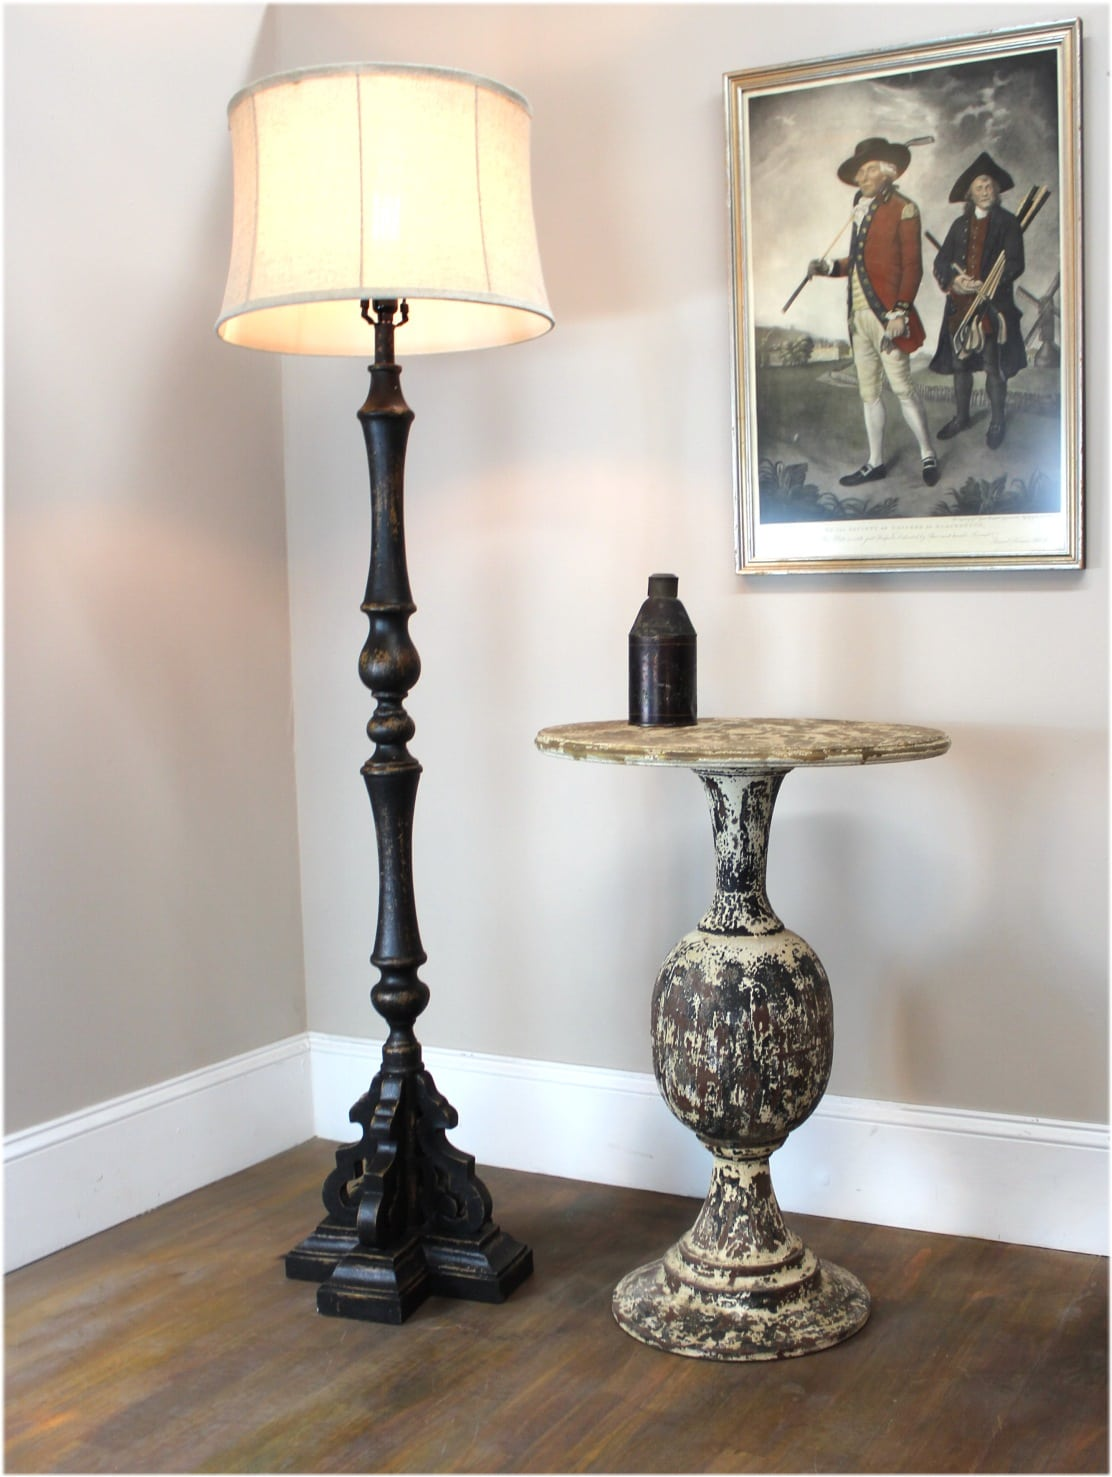 Marvelous Black Floor Lamp La Femme Aged Black Painted French Country Finish W Shade Download Free Architecture Designs Intelgarnamadebymaigaardcom